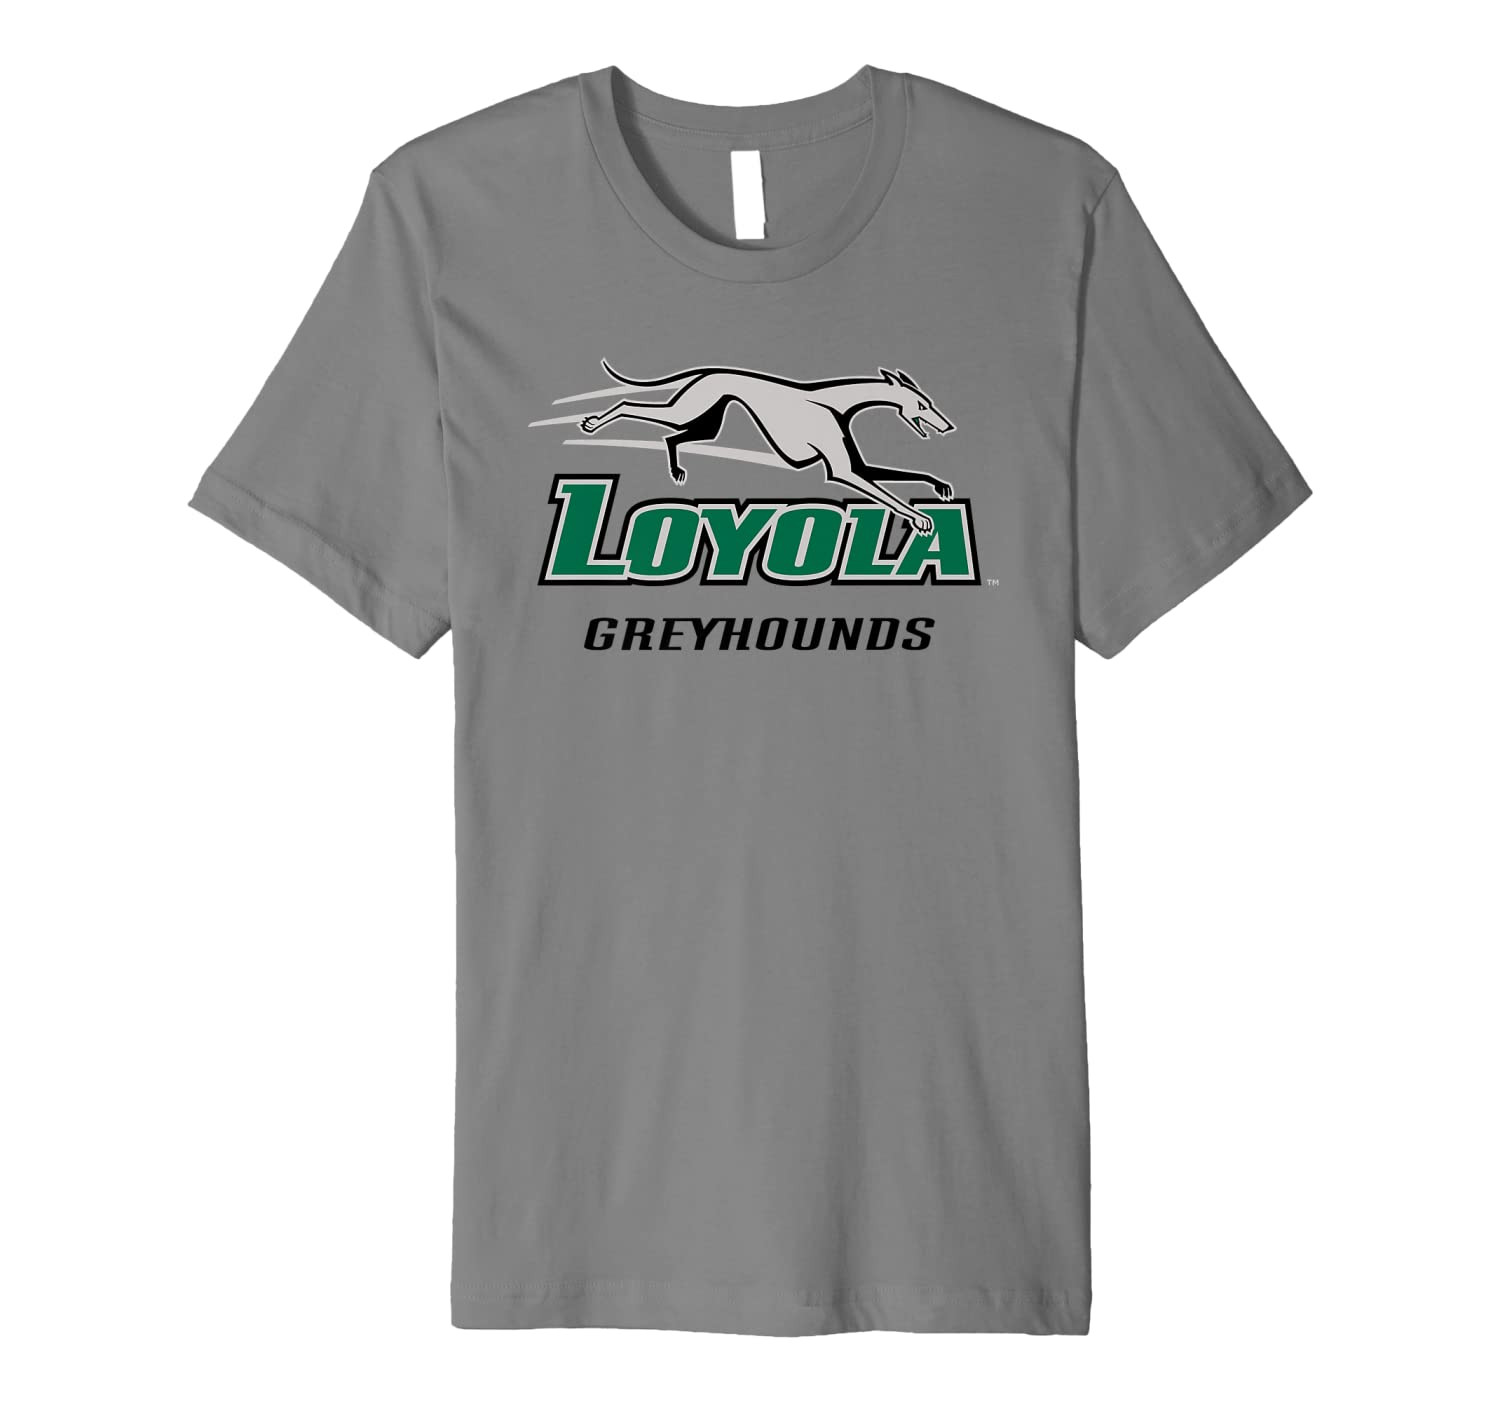 NCAA Loyola Greyhounds T-Shirt V2